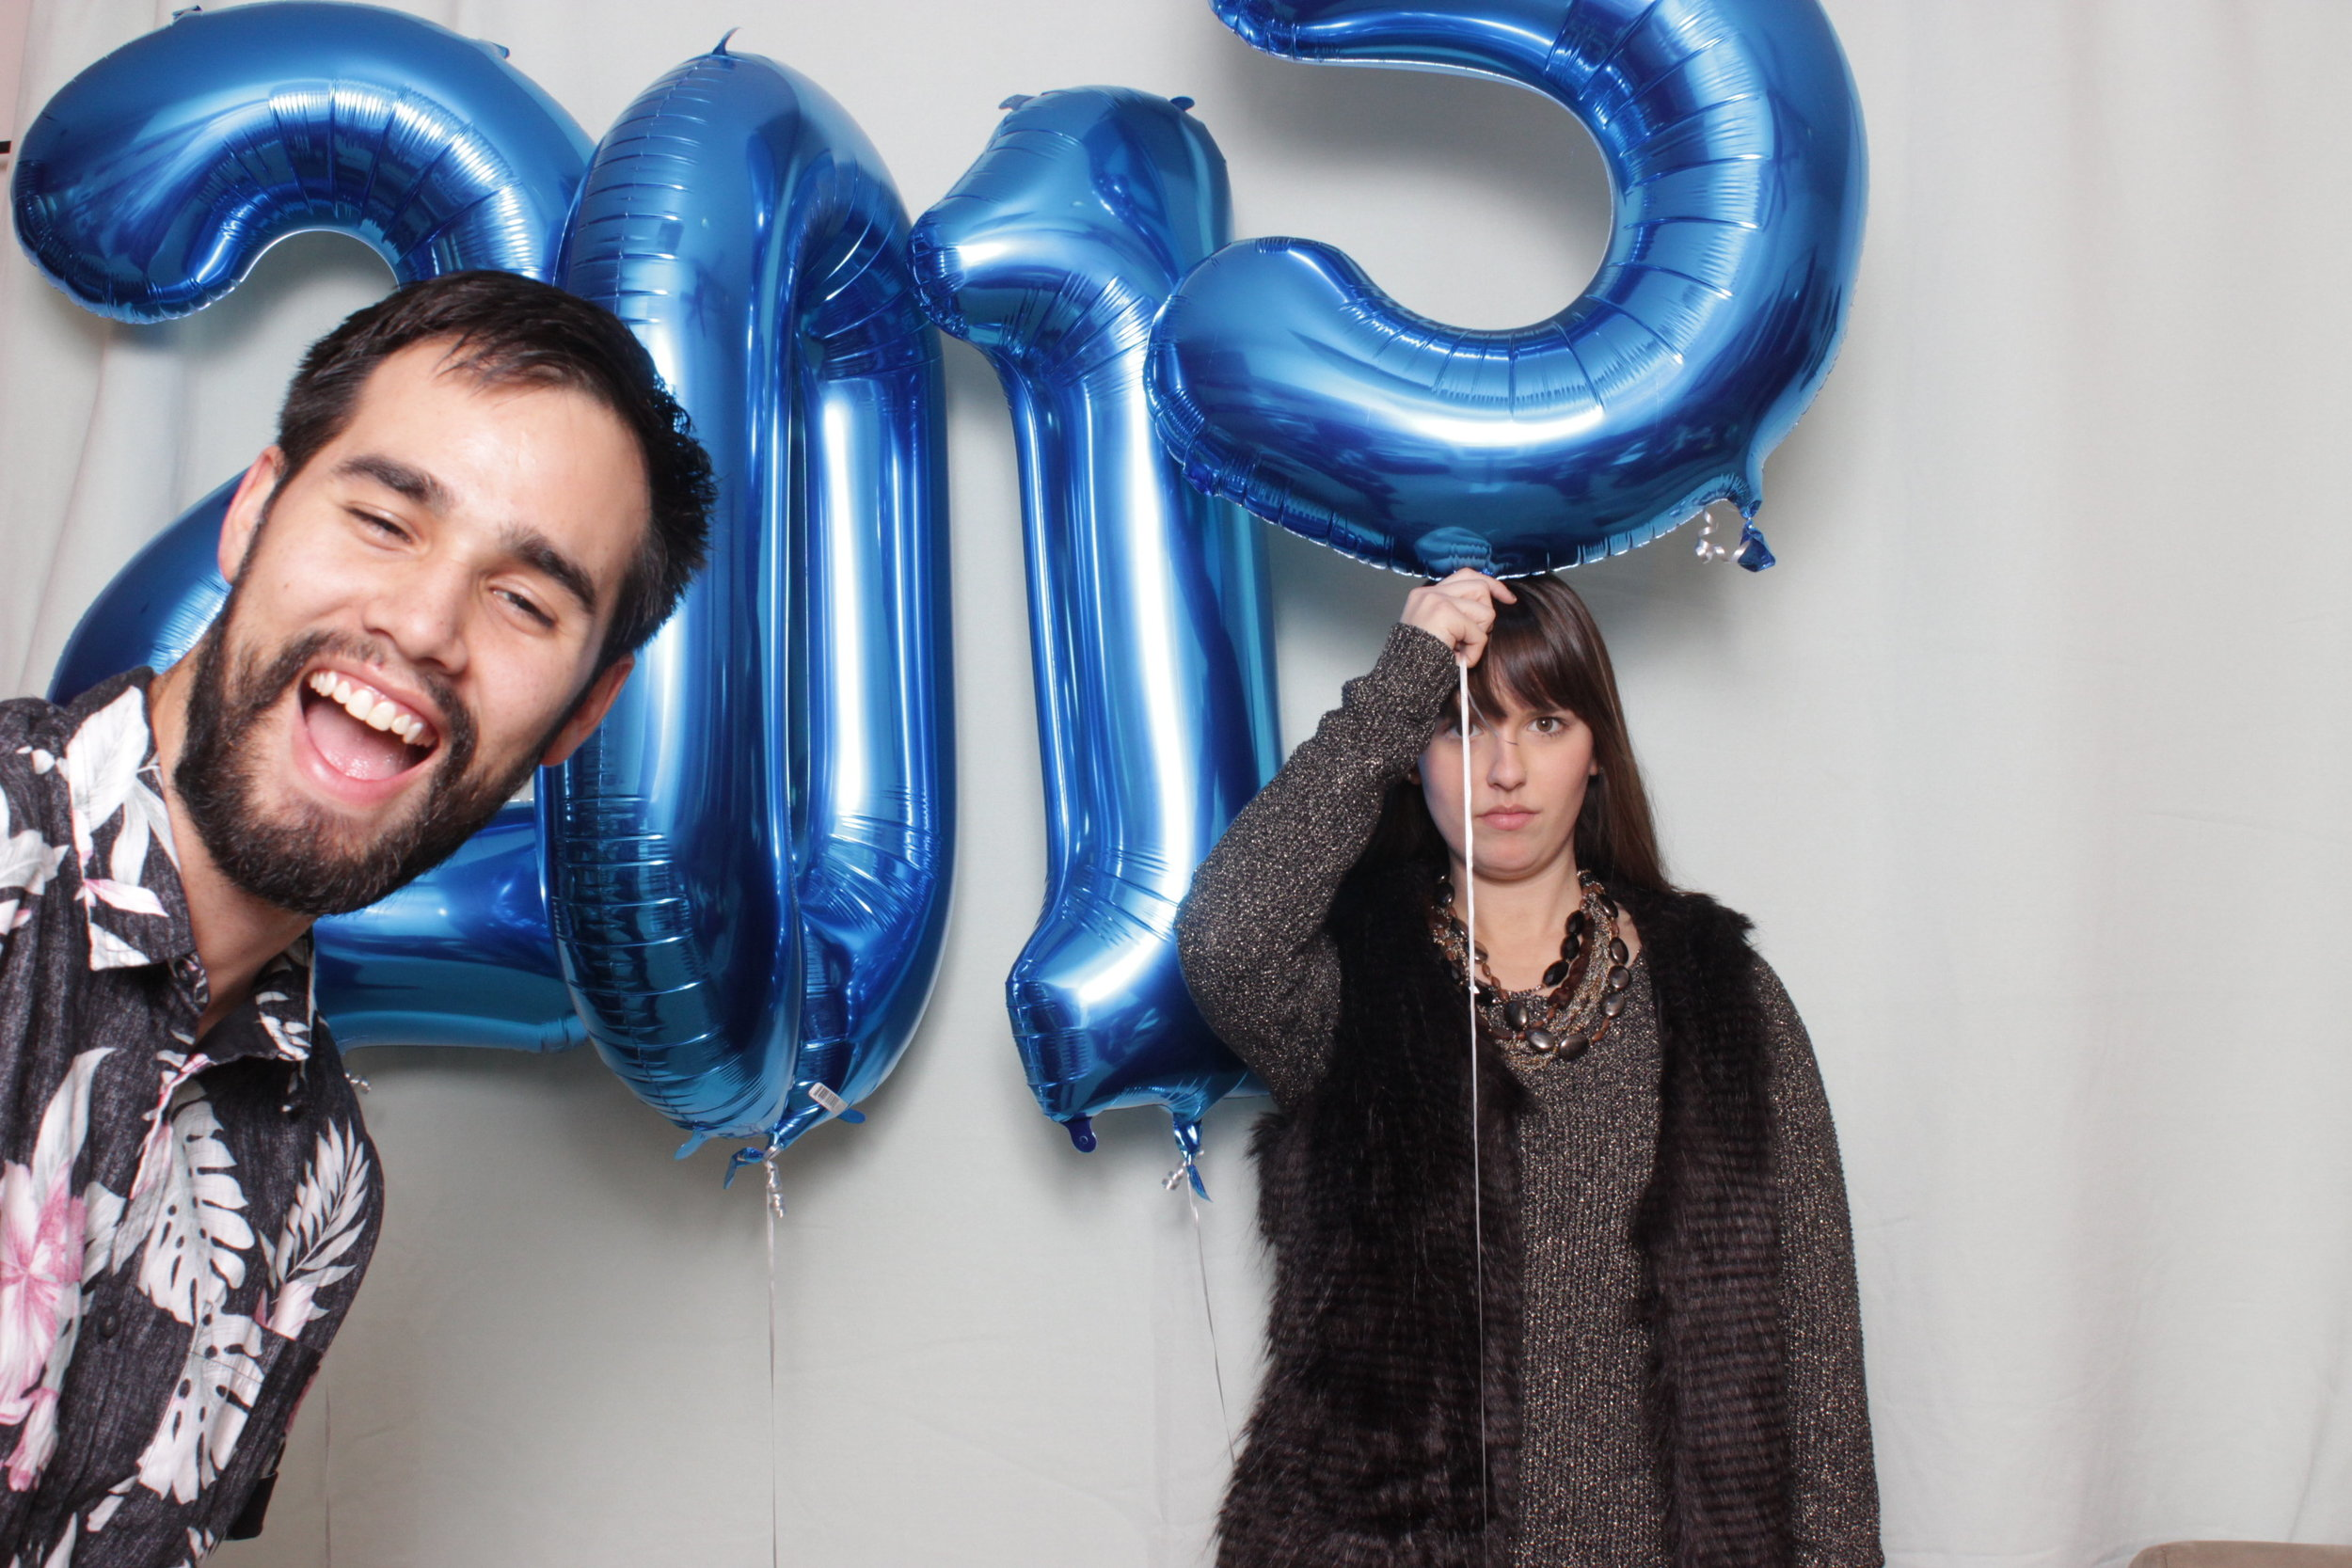 photo-booth-rental-in-chico-california-new-years-party-happy-mad-foil-balloons